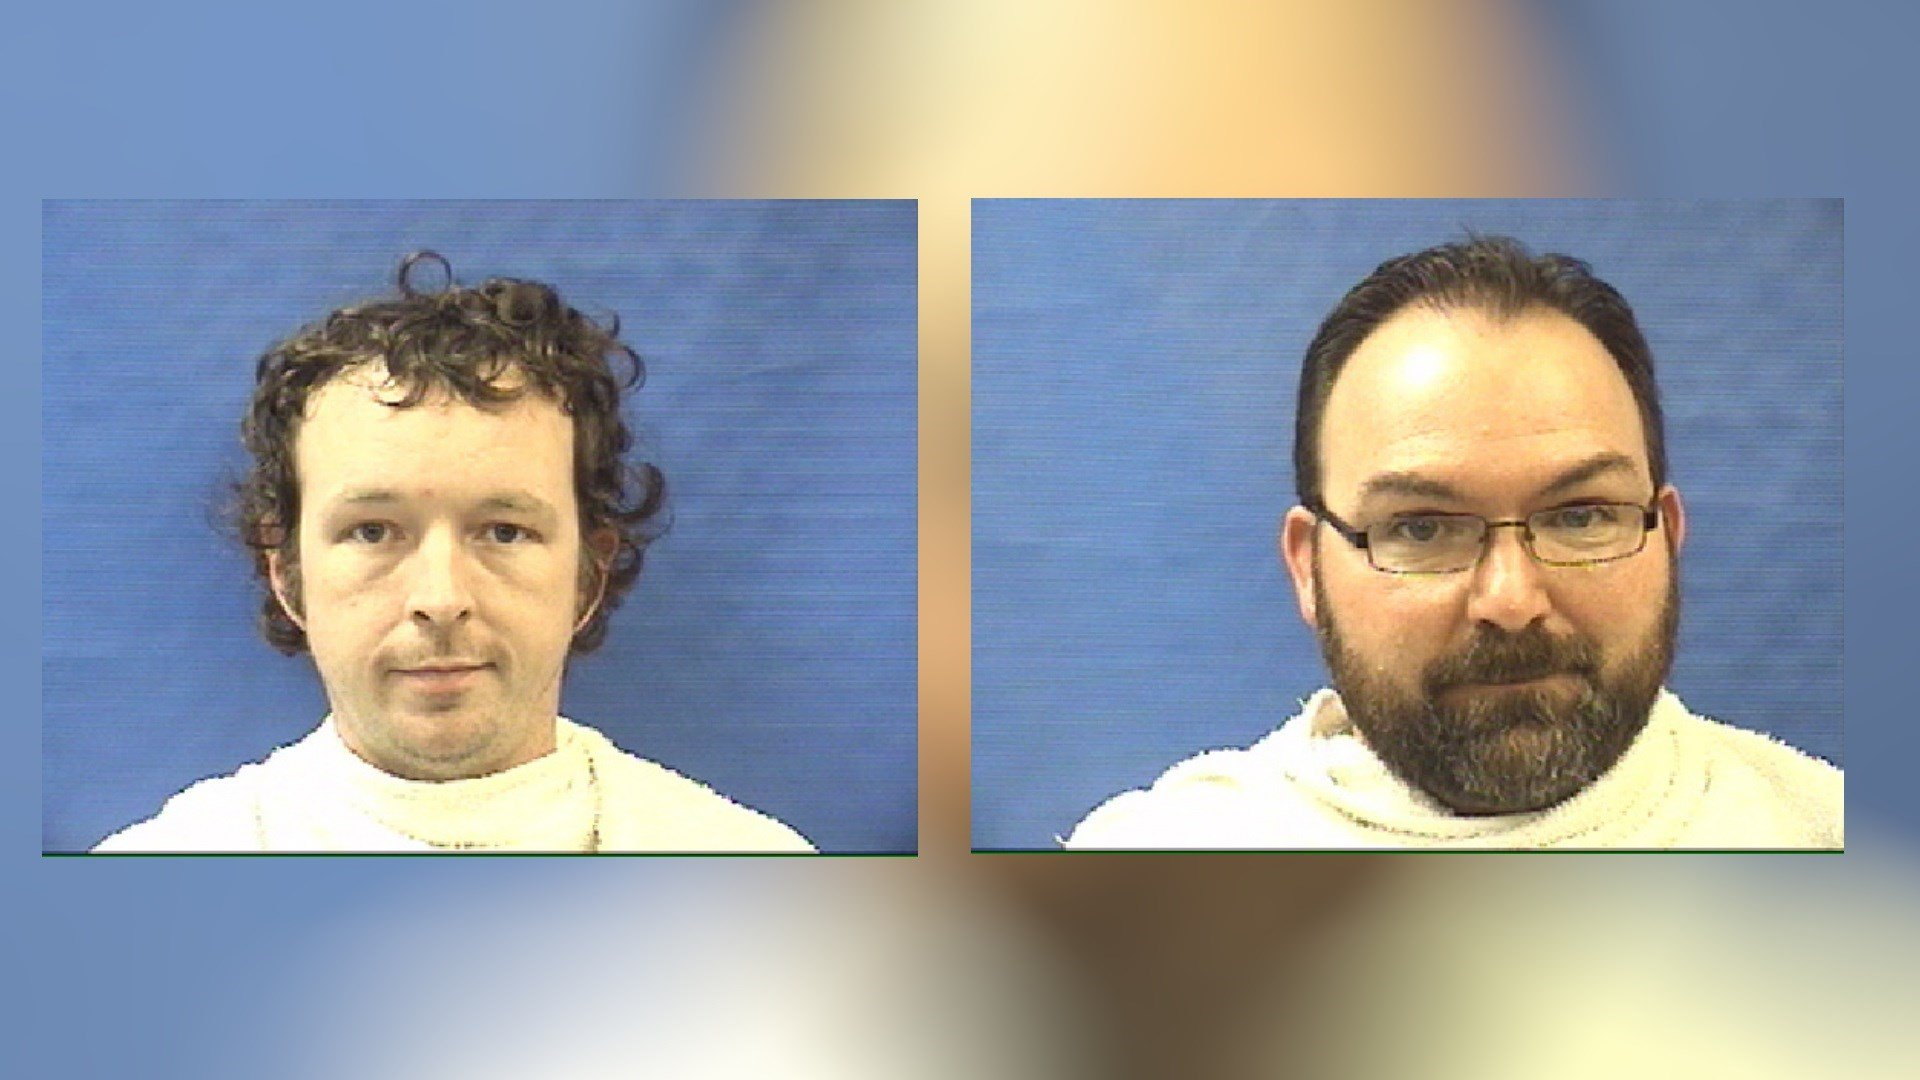 Photos: Shenandoah West Moneypenny, left and Shawn Dale Sanders, right. Kaufman County Sheriff's Office